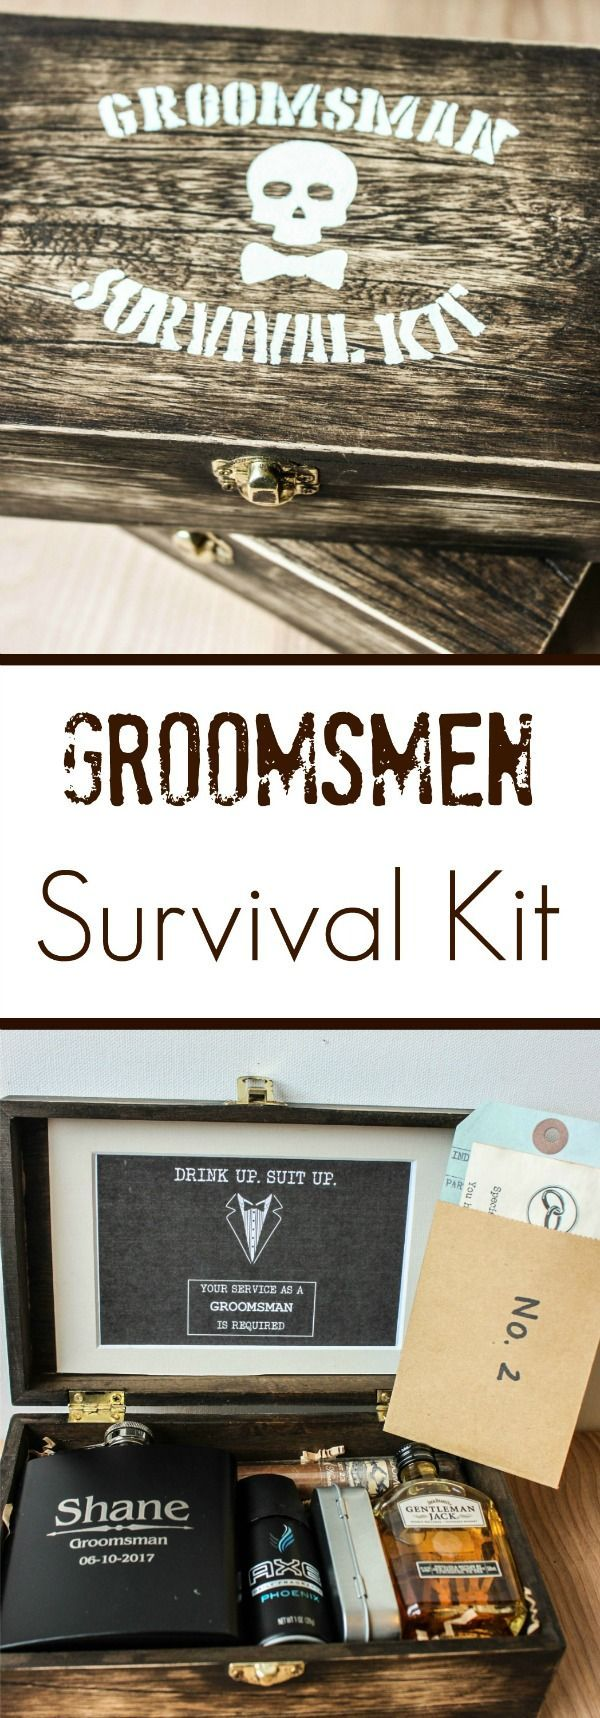 best gifts for the guys images on pinterest groomsman gifts